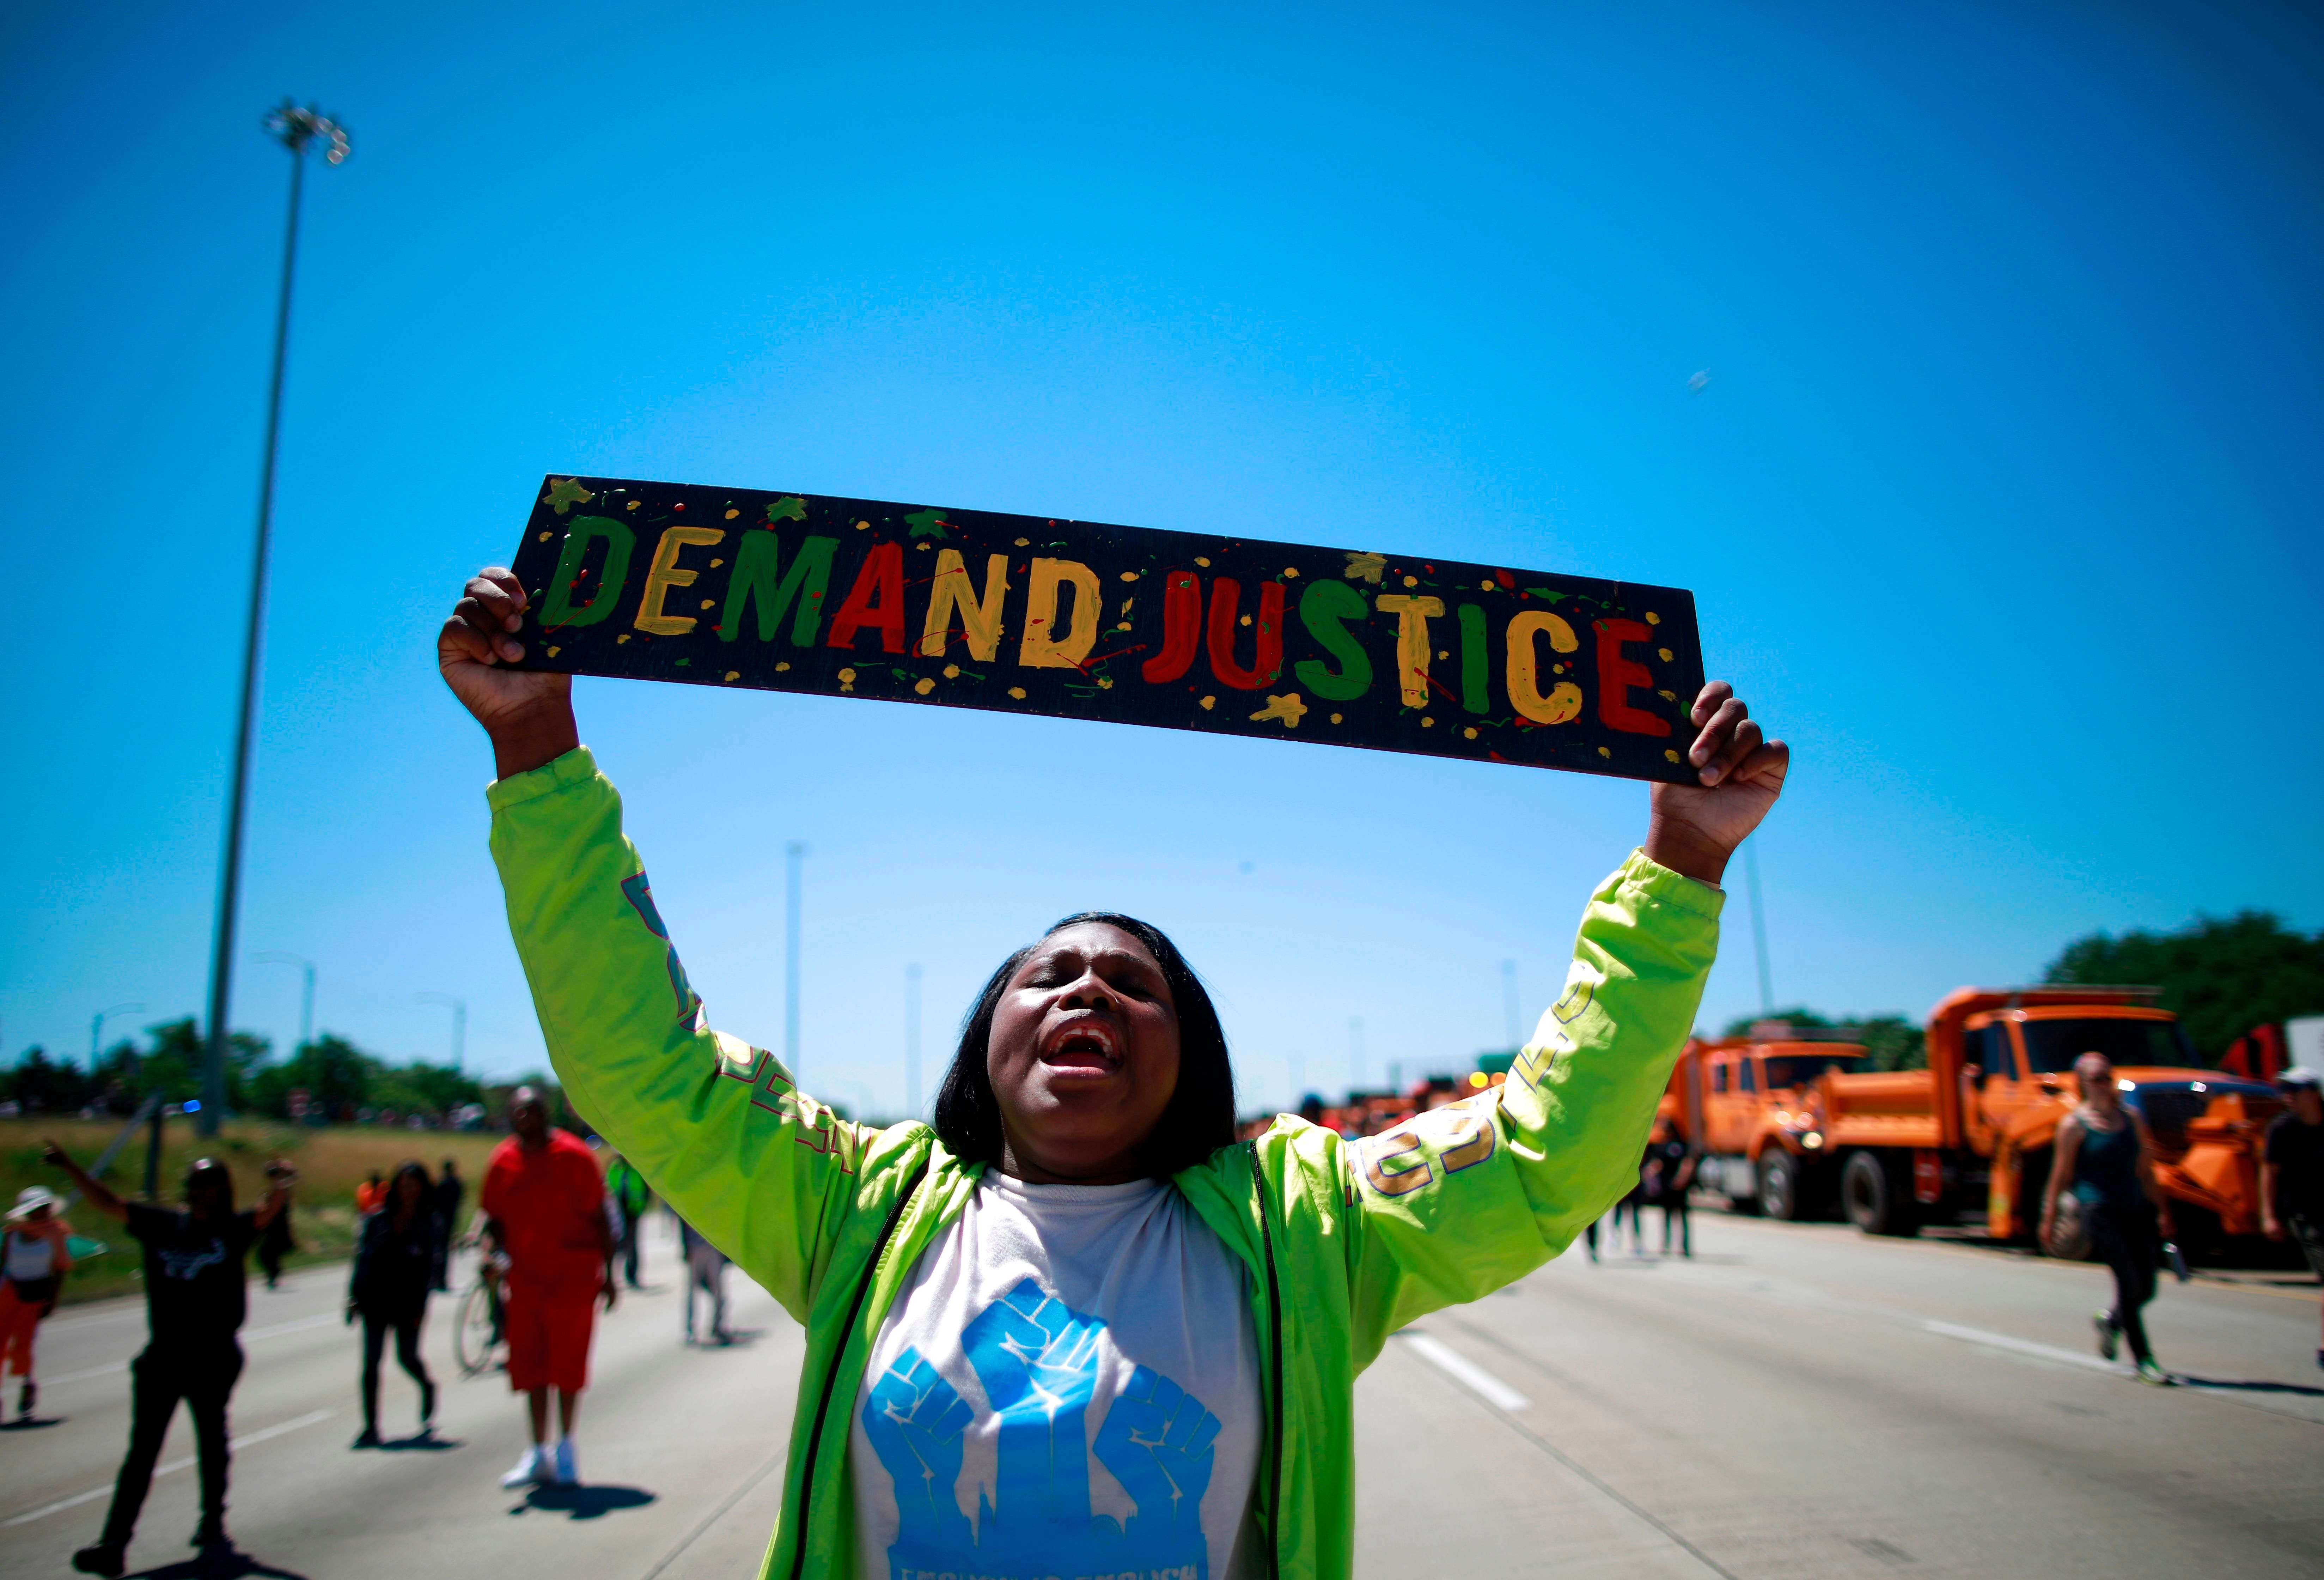 TOPSHOT - A protestor marches along the shutdown Dan Ryan Expressway during an anti-violence demonstration in Chicago, July 7, 2018. - Thousands of protesters against Chicago's pervasive gun violence partially shut down a major expressway in the third-largest US city, which leads the country in murders.  The demonstrators, led by a local pastor known for decades of anti-violence advocacy in Chicago's hard-scrabble South Side, completely closed off one side of the Dan Ryan Expressway for about an hour. (Photo by JIM YOUNG / AFP)        (Photo credit should read JIM YOUNG/AFP/Getty Images)